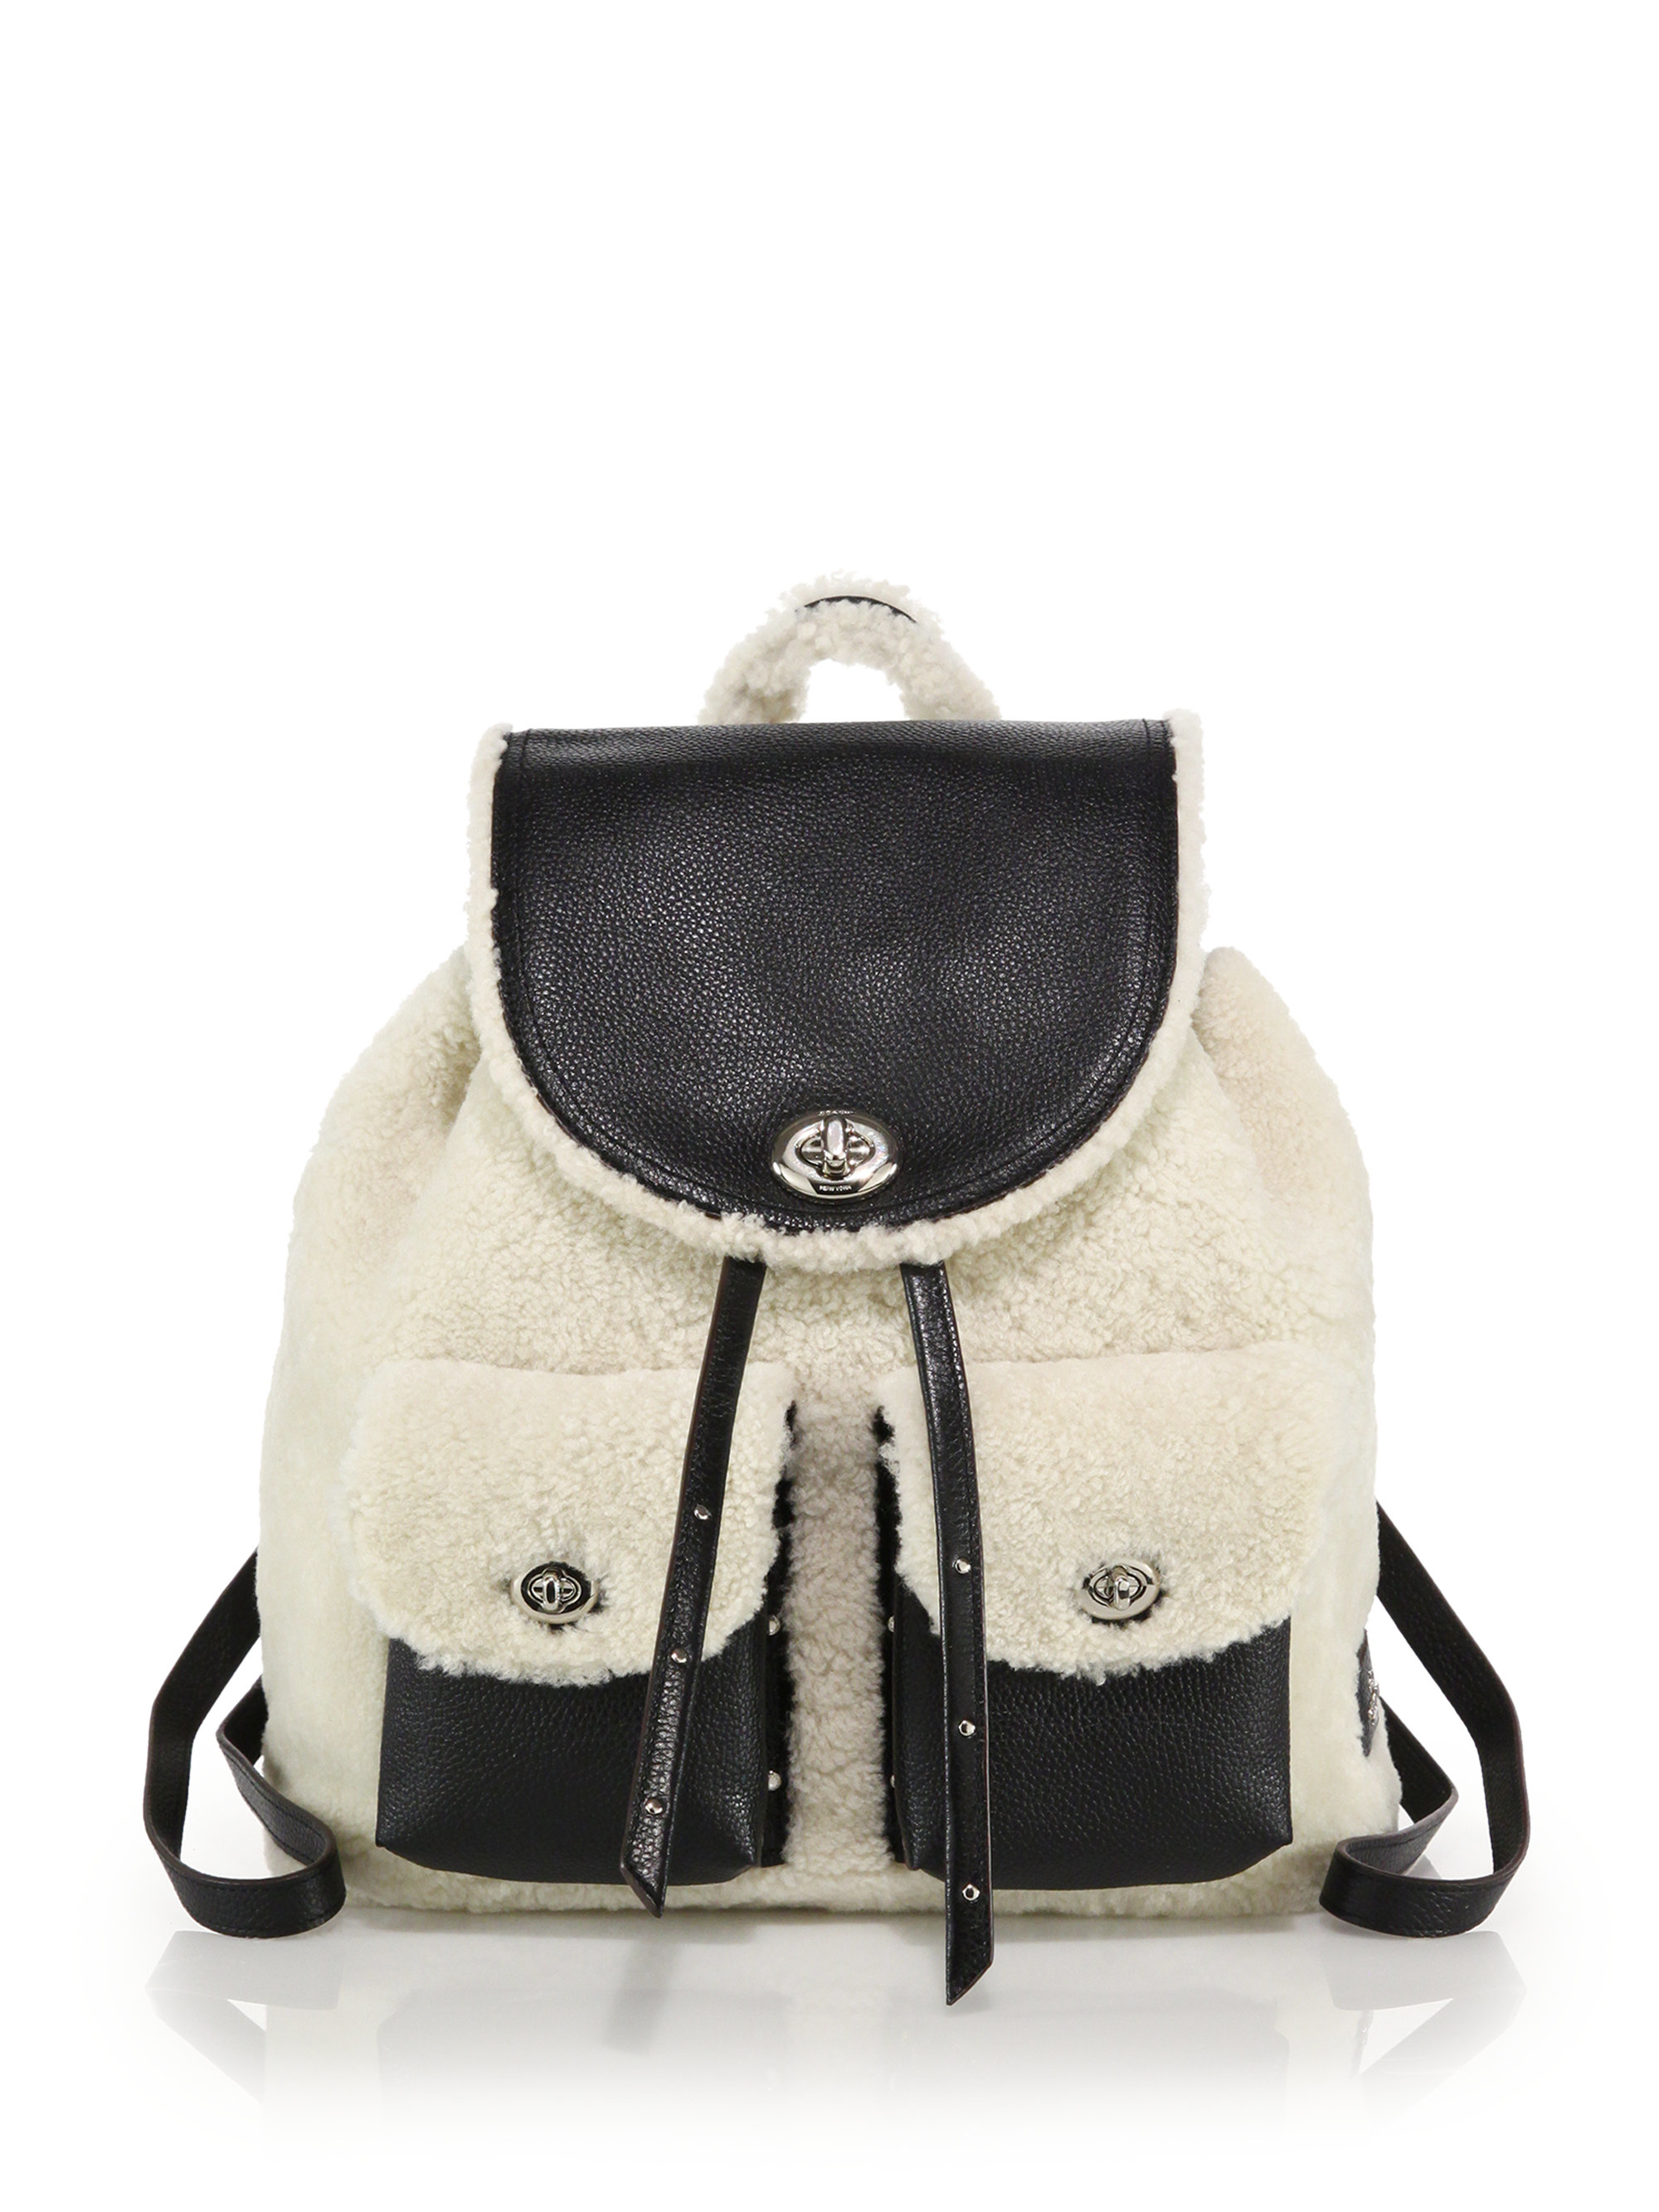 6a2ff7eec93e ... order lyst coach shearling leather turnlock backpack in black 8199c  e568a